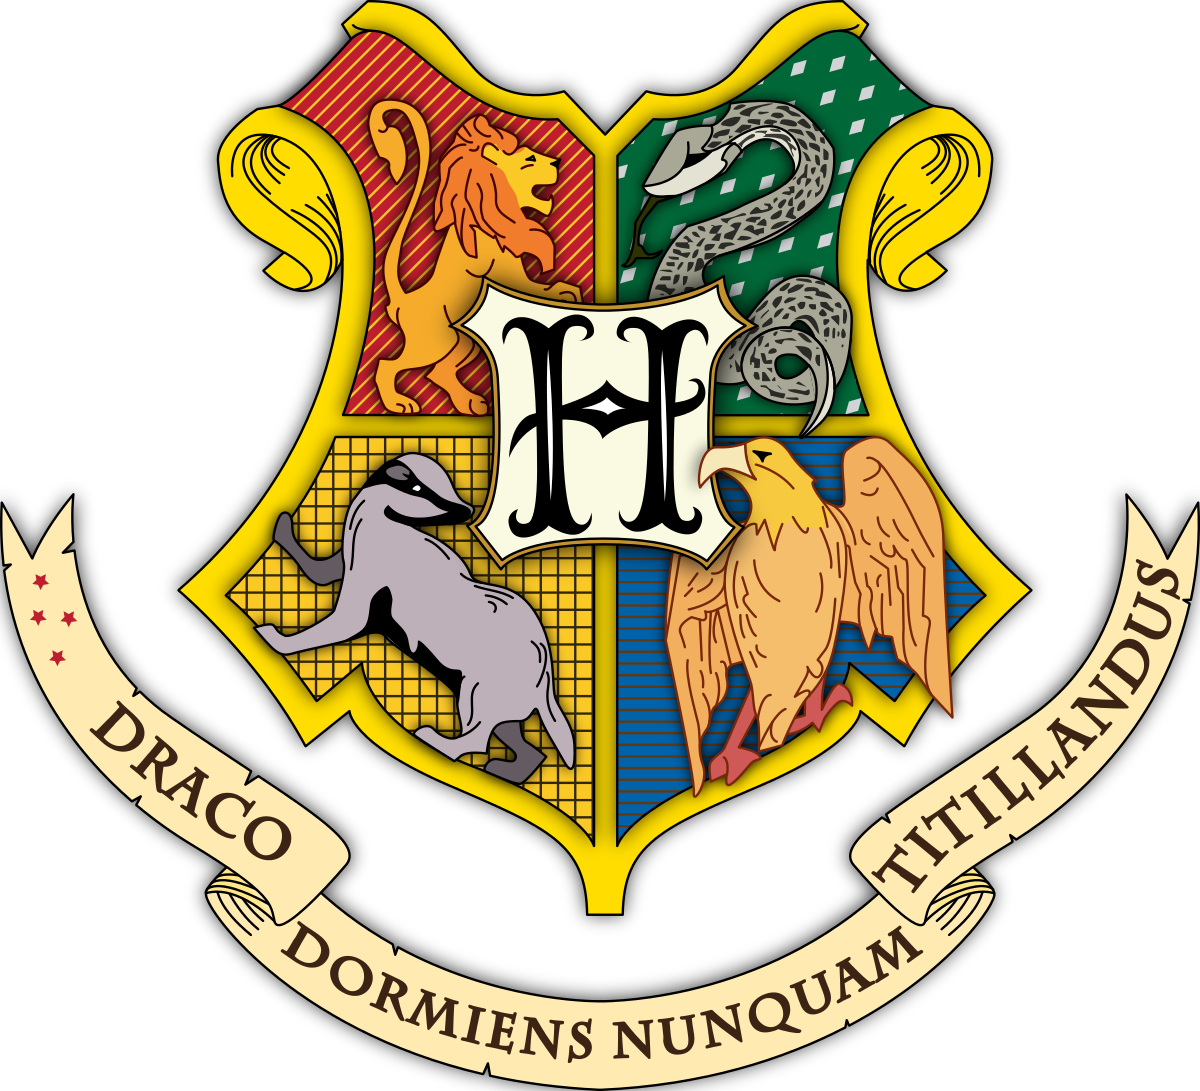 what is your favorite harry potter house?